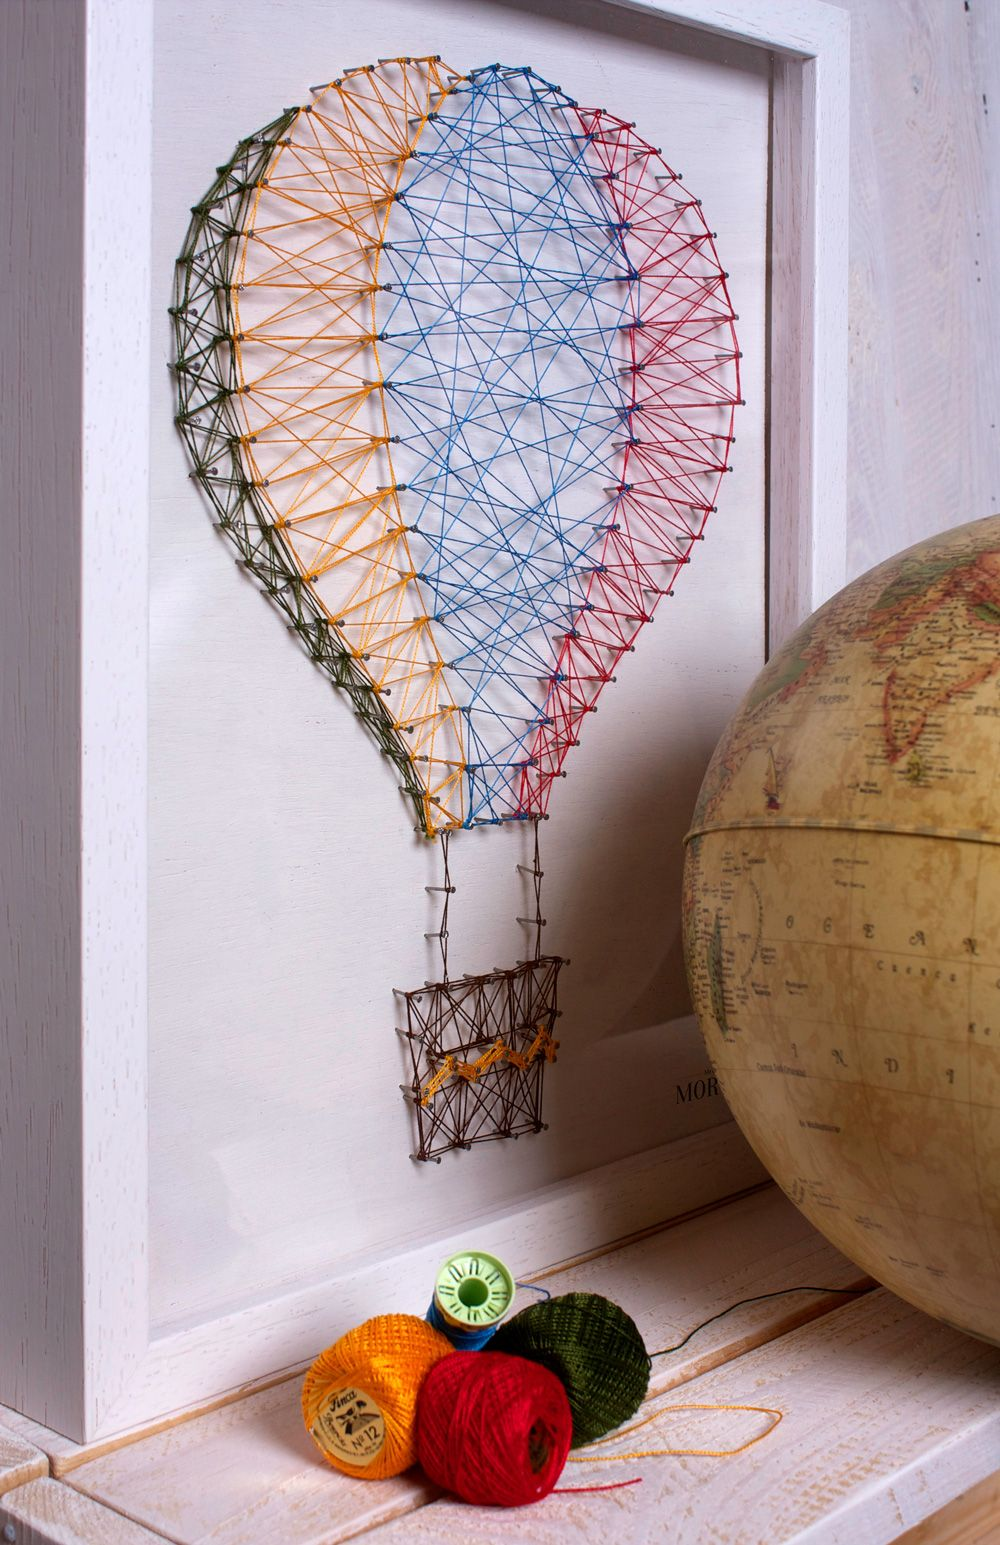 Uncategorized String Art Balloons ideas para hacer cuadros diy con madera clavos e hilo decora las mr and mrs morgan have made this awesome air balloon string art we really love craft in order to decorate a nursery c